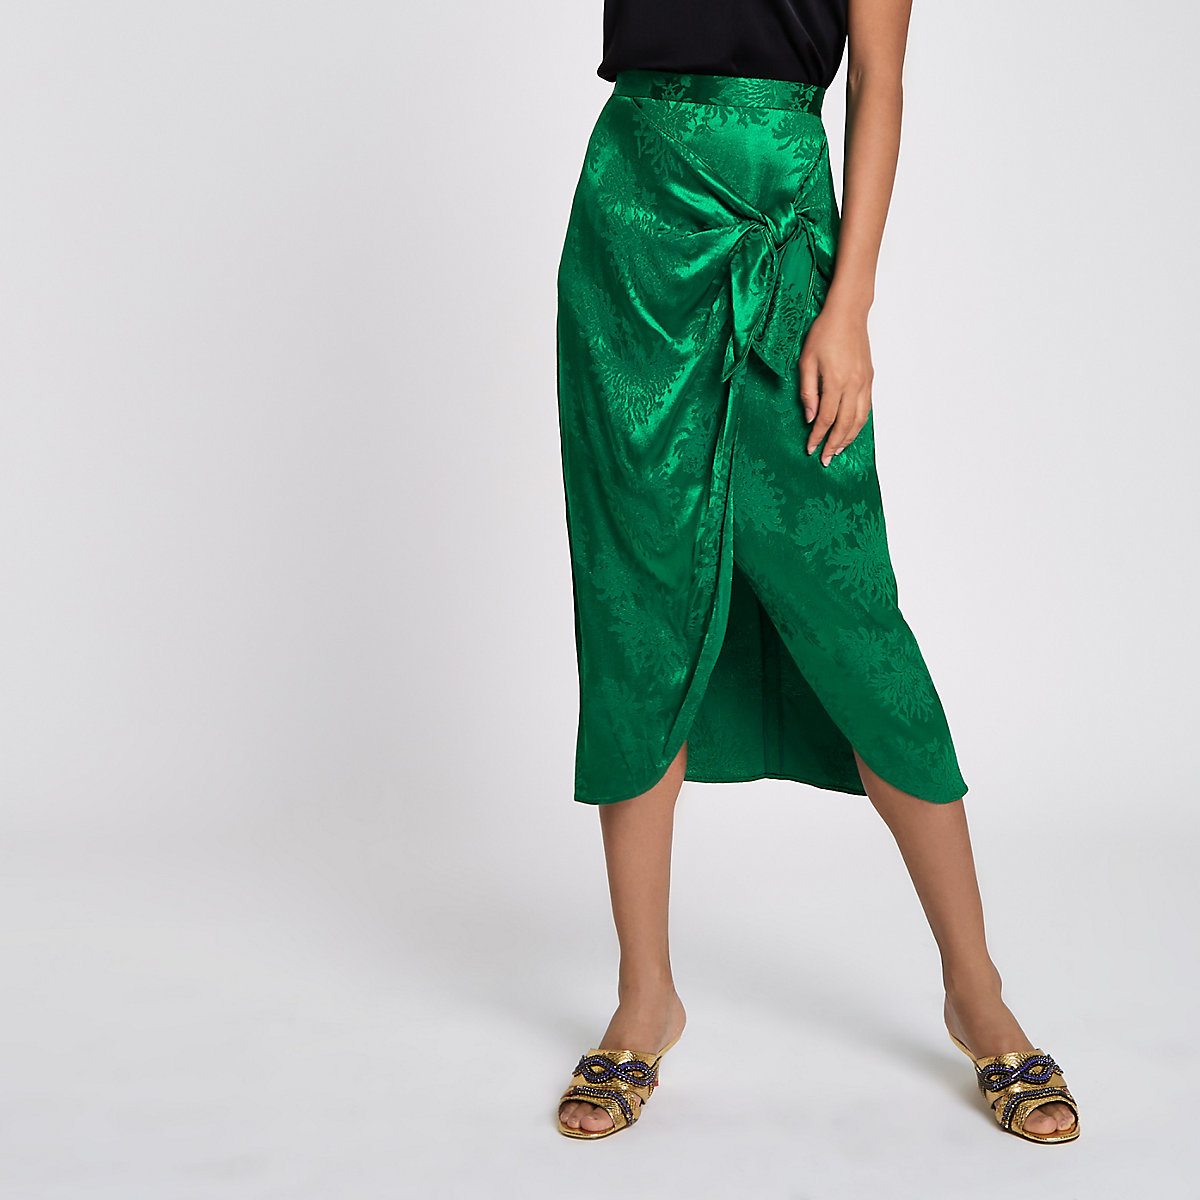 Green jacquard tie knot wrap skirt